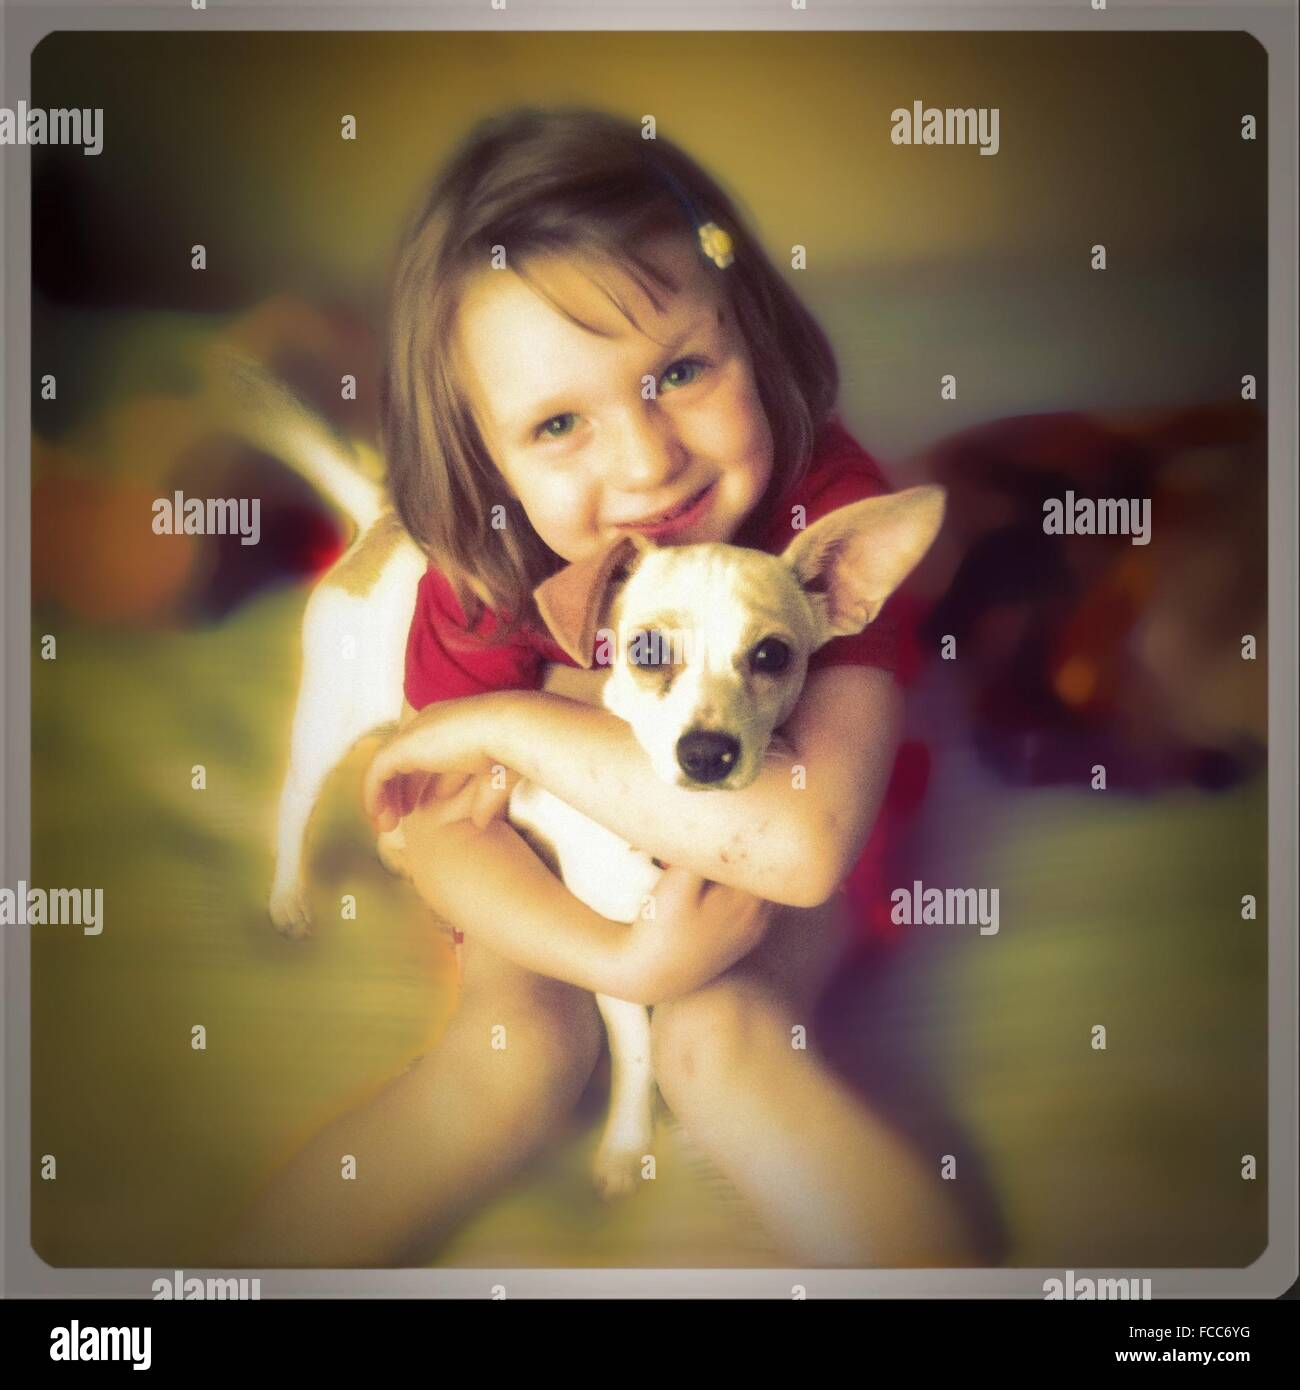 Young Girl Hugging Puppy - Stock Image